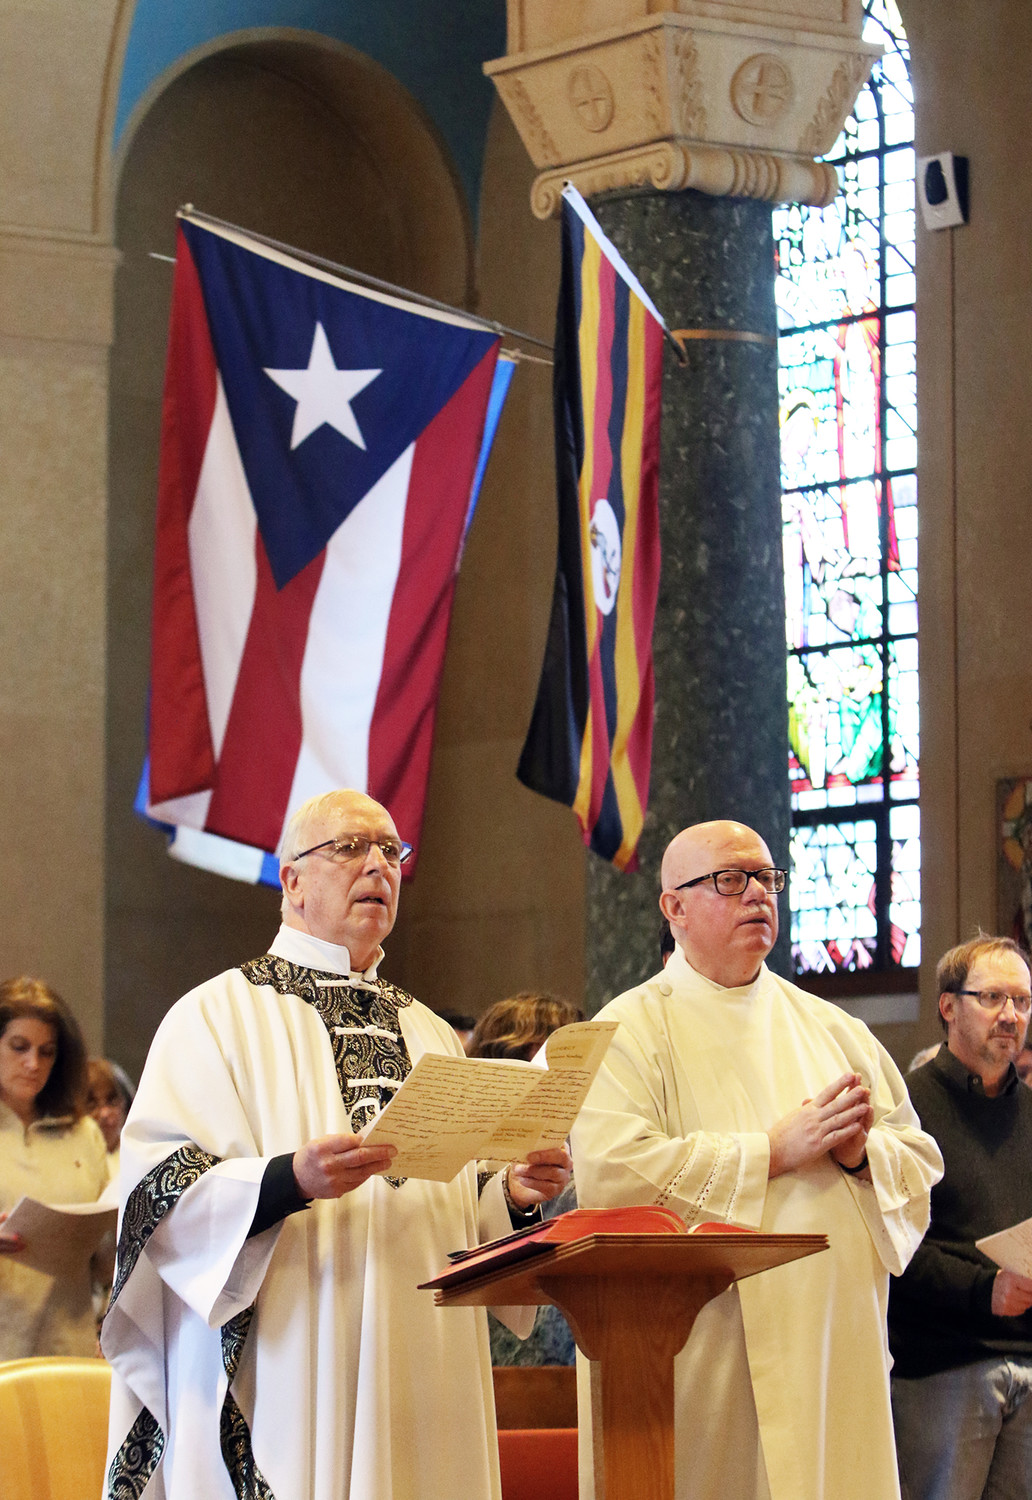 Father Raymond J. Finch, M.M., left, superior general of the Maryknoll Fathers and Brothers, and Father Michael Walsh, M.M., pray during Mass April 2 at the Maryknoll Society Center in Ossining.